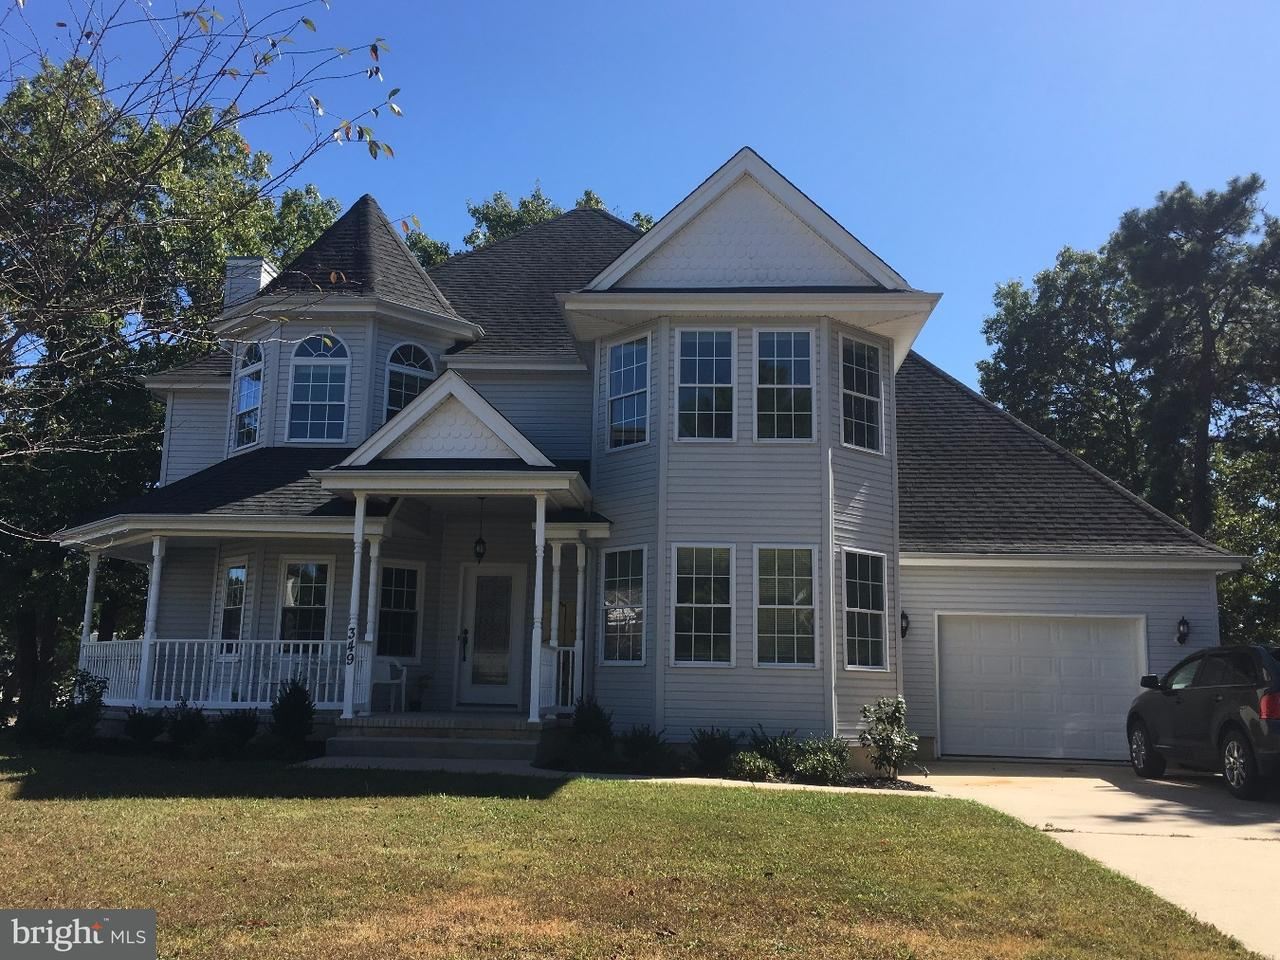 Single Family Home for Sale at 349 ATLANTIS Avenue Manahawkin, New Jersey 08050 United States